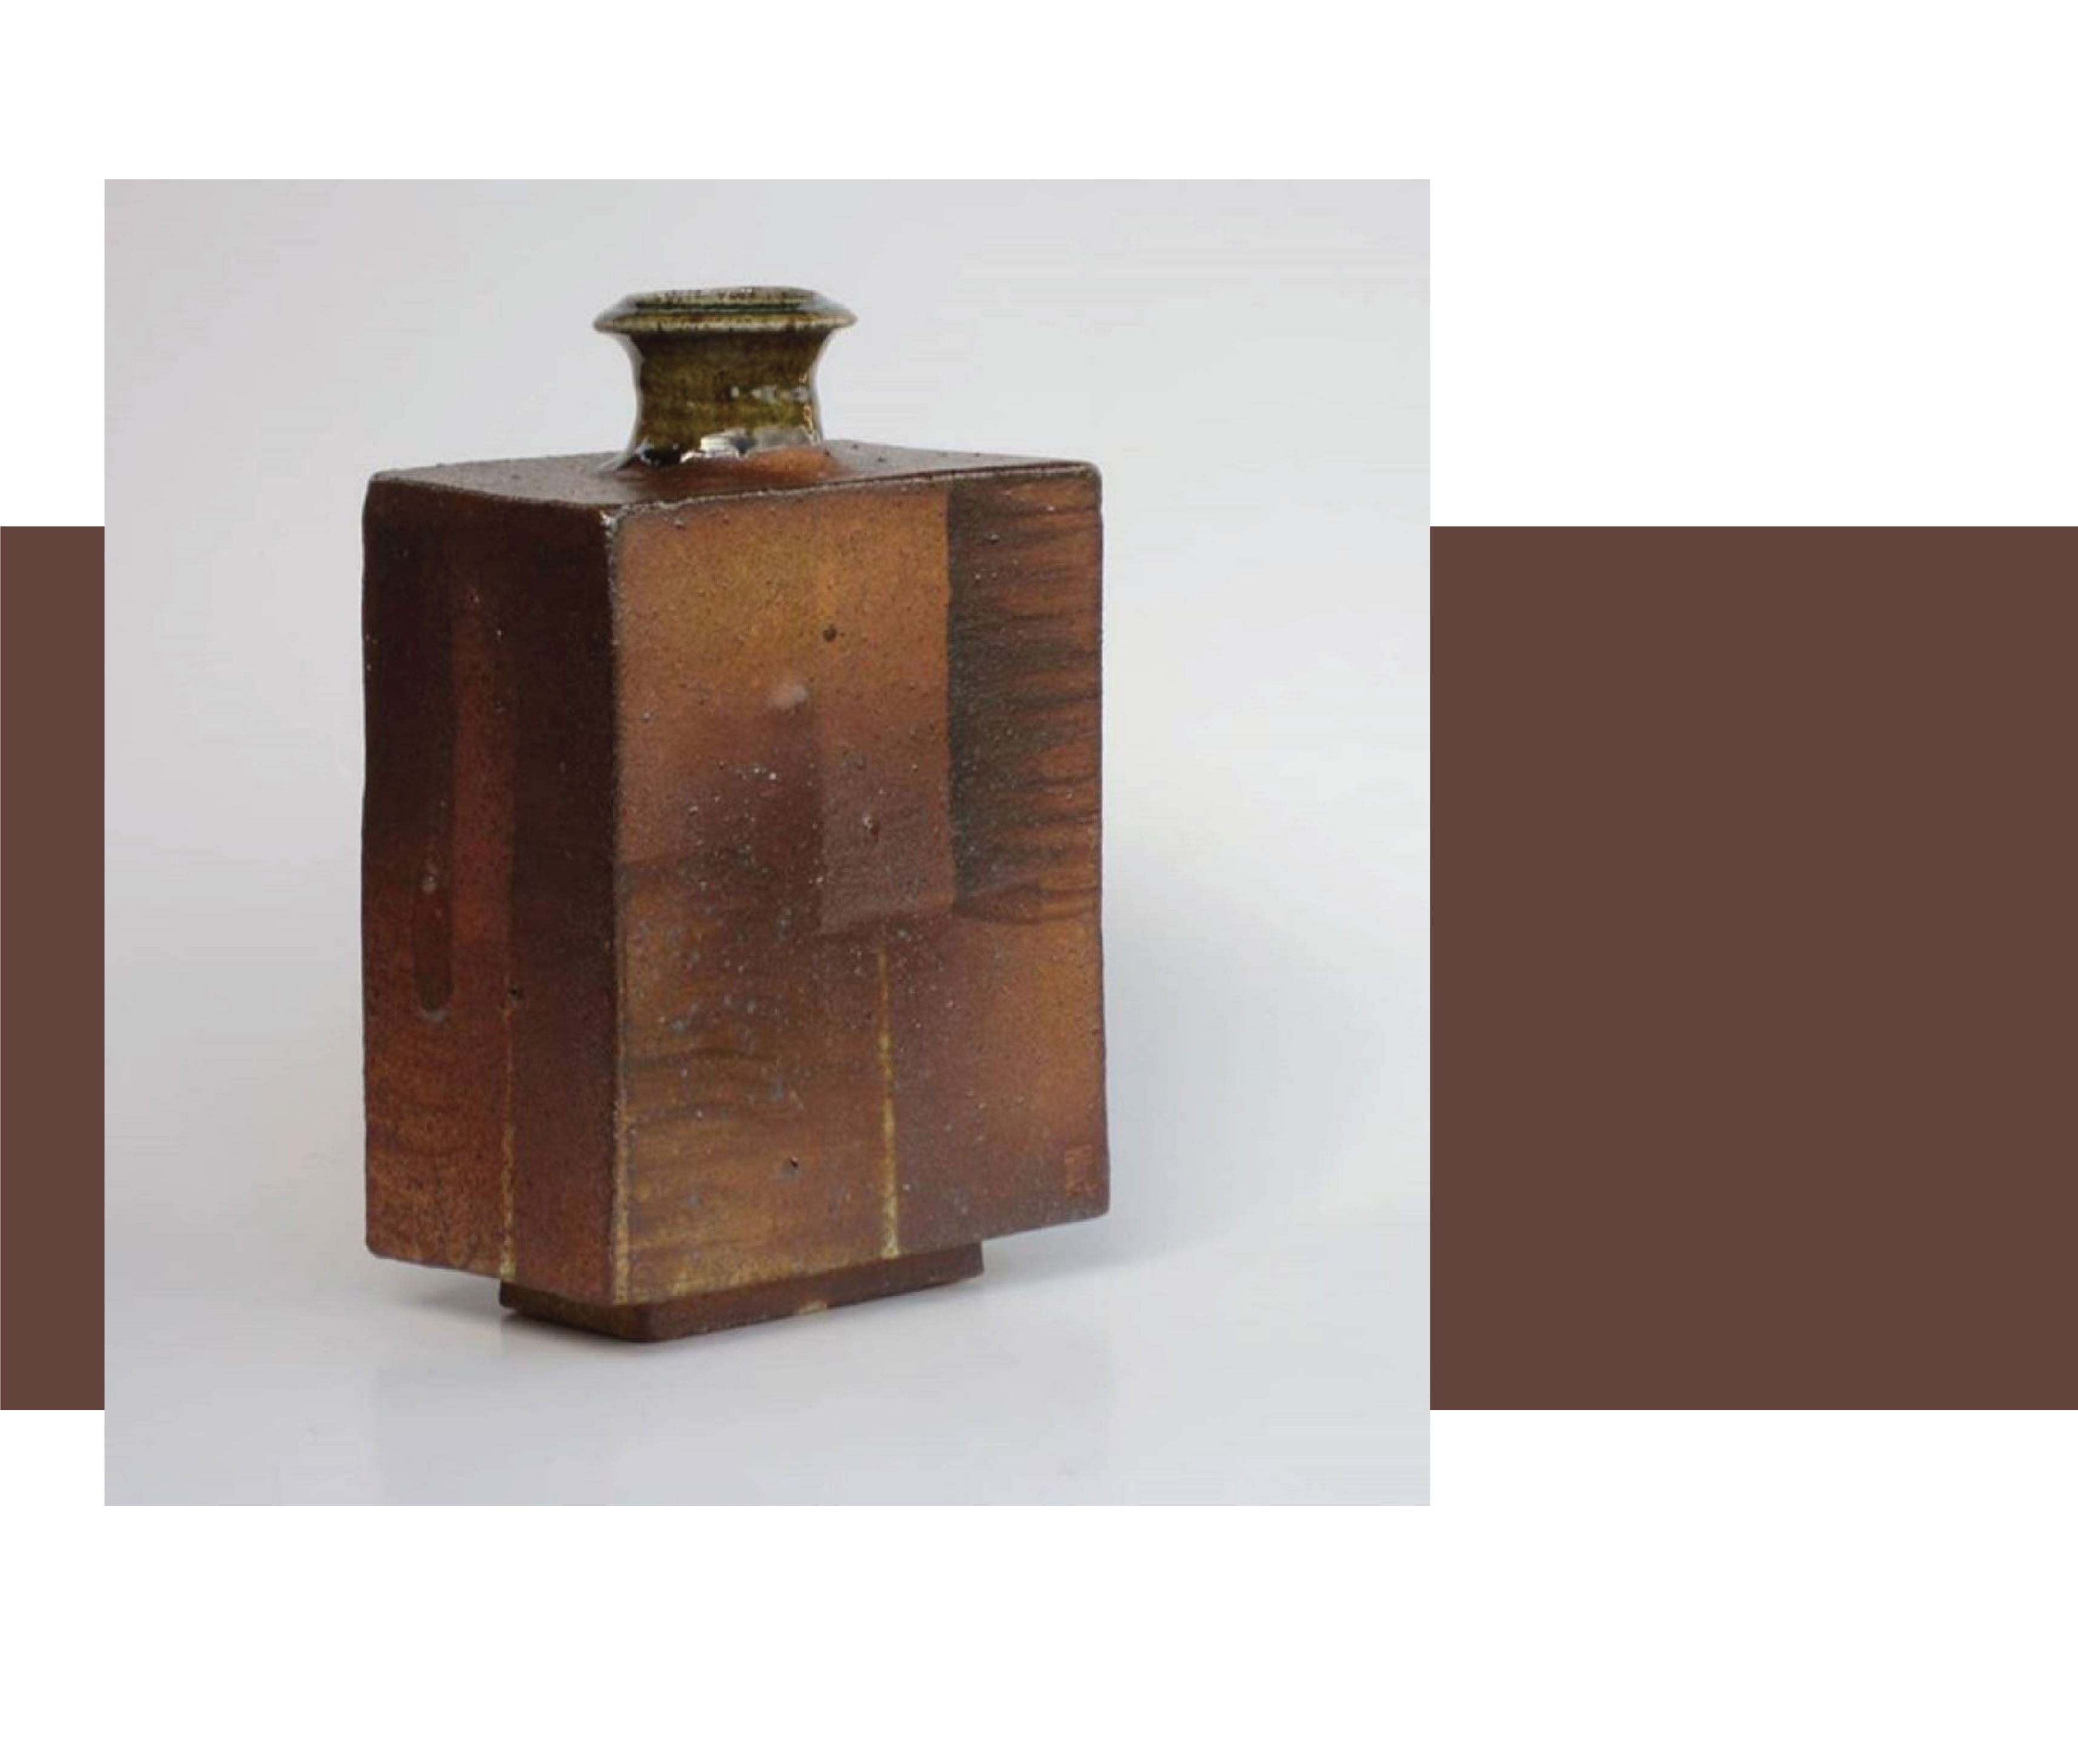 A rectangle vase with grid pattern in shades of copper and brown, , by New Zealand potter and ceramist Steve Aitkin.